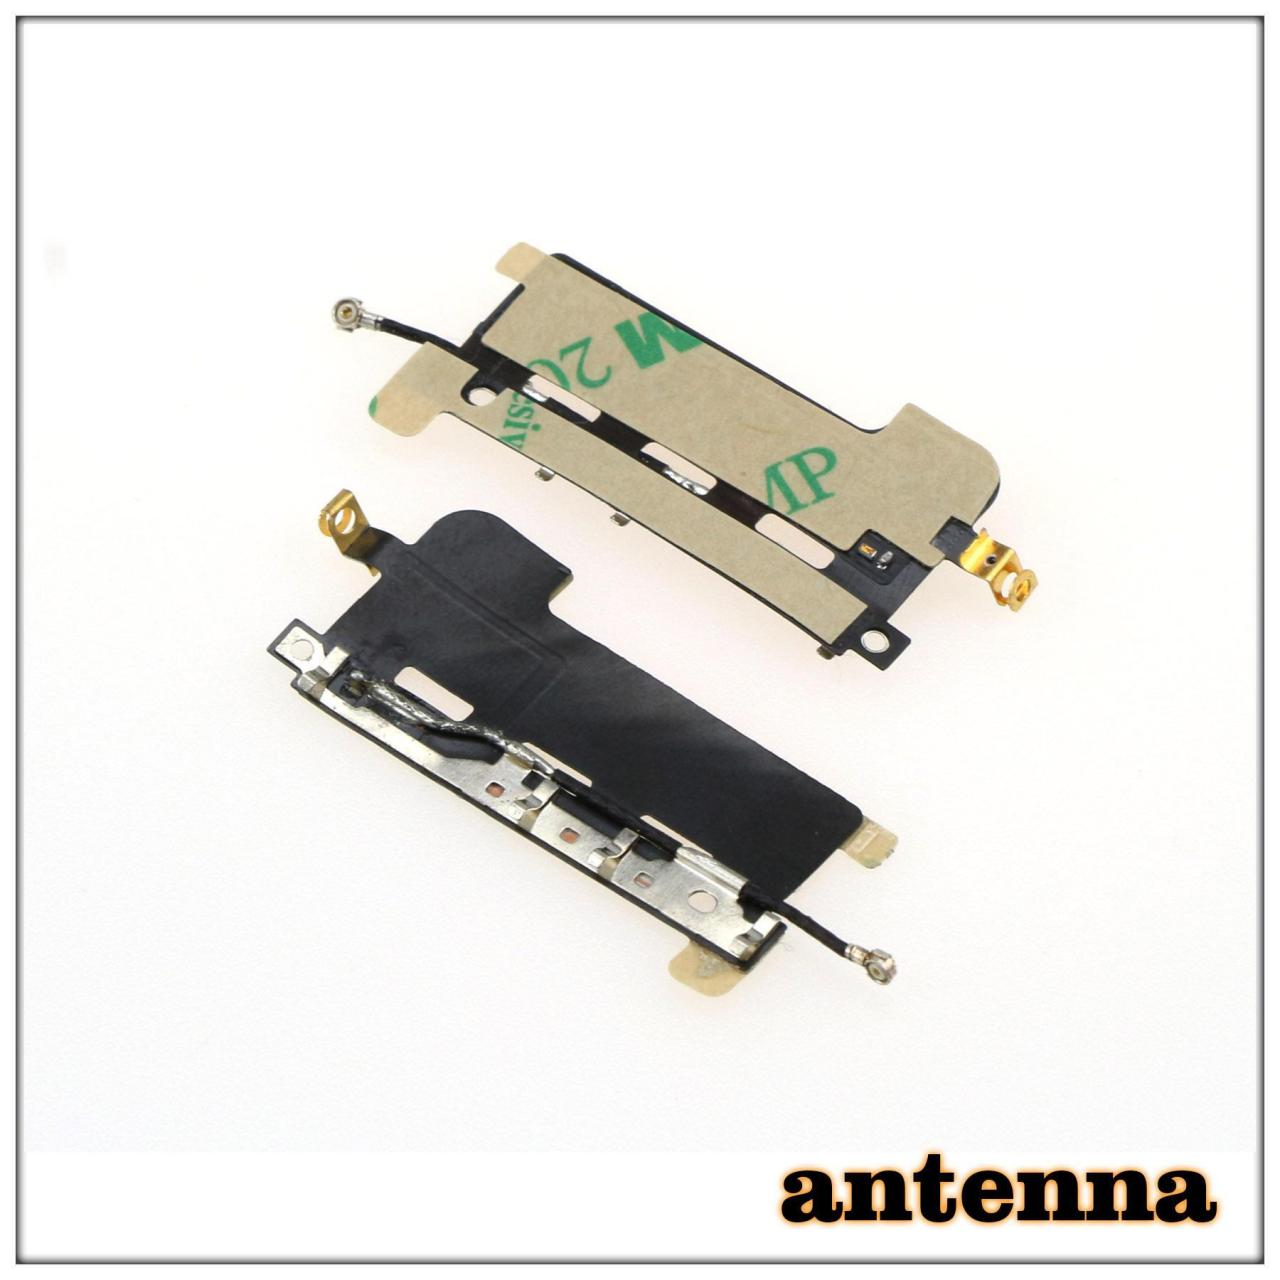 Quality iPhone antenna Parts inside iPhone for sale